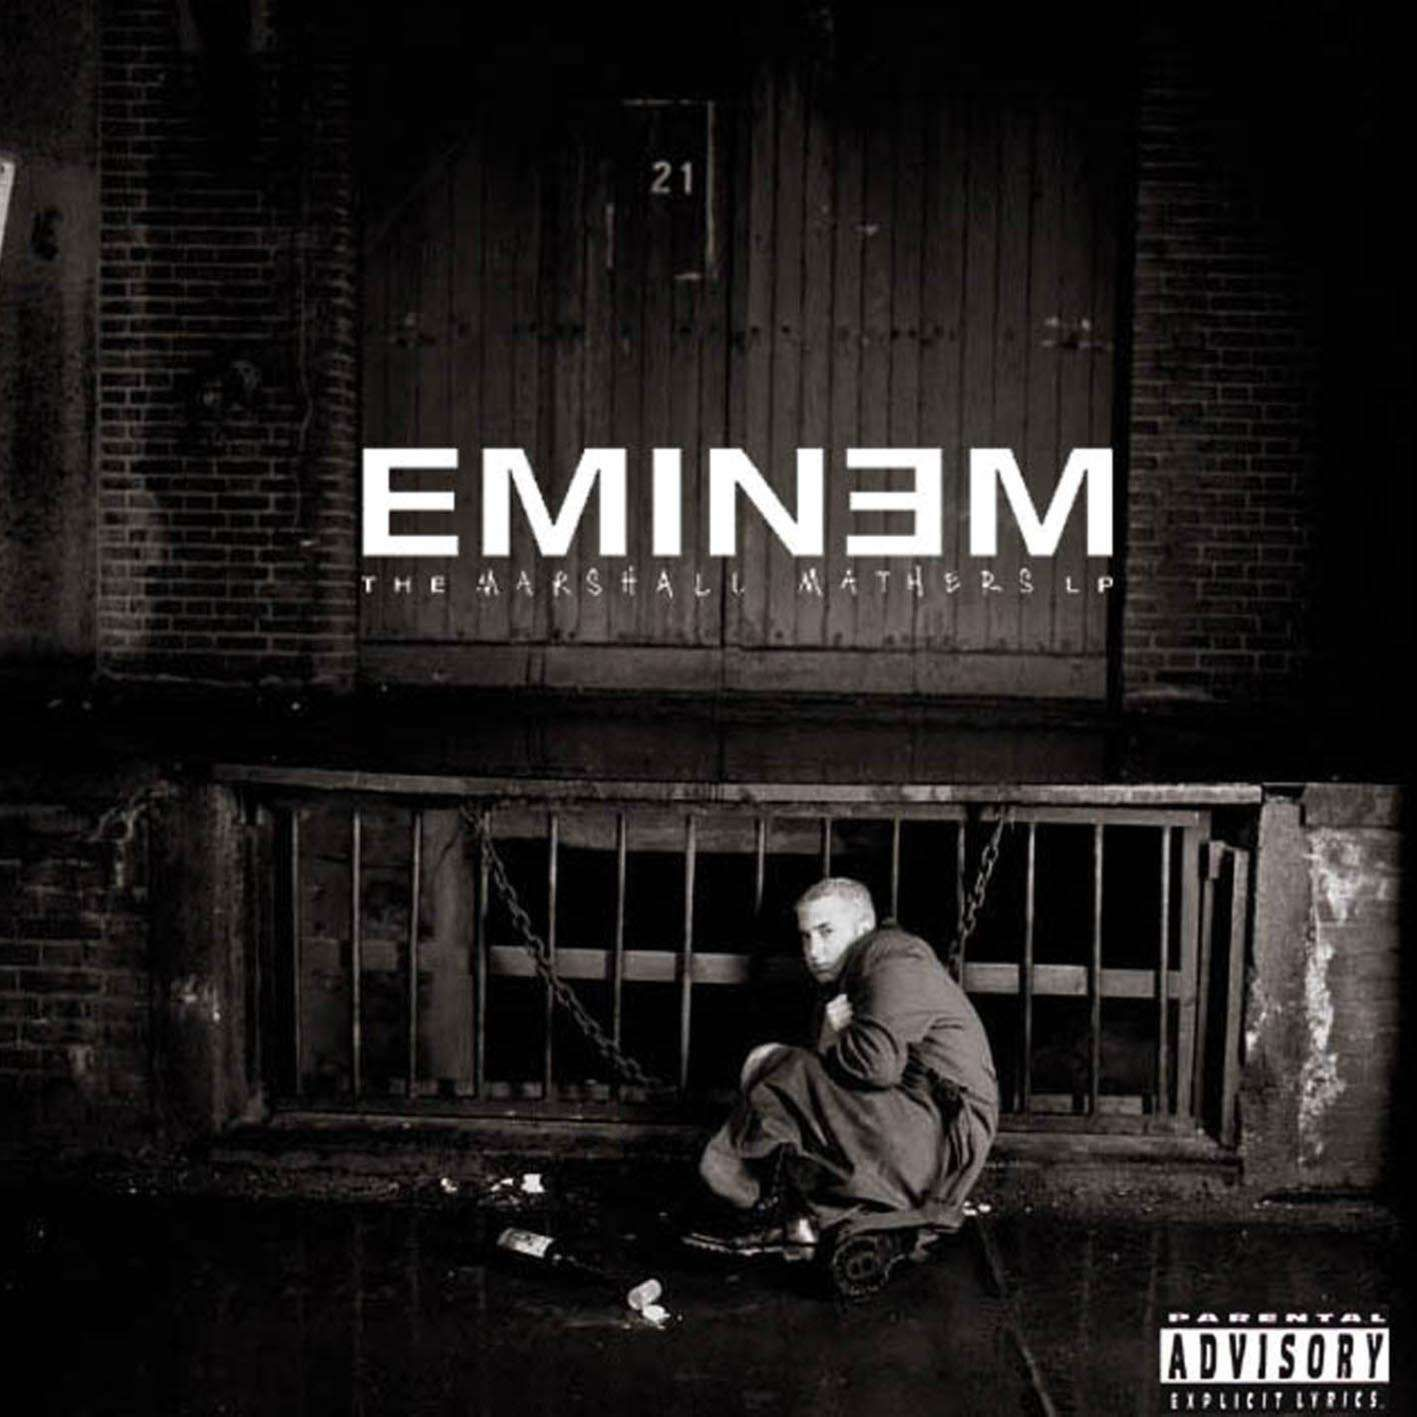 Eminem - The Marshall Mathers Lp album cover